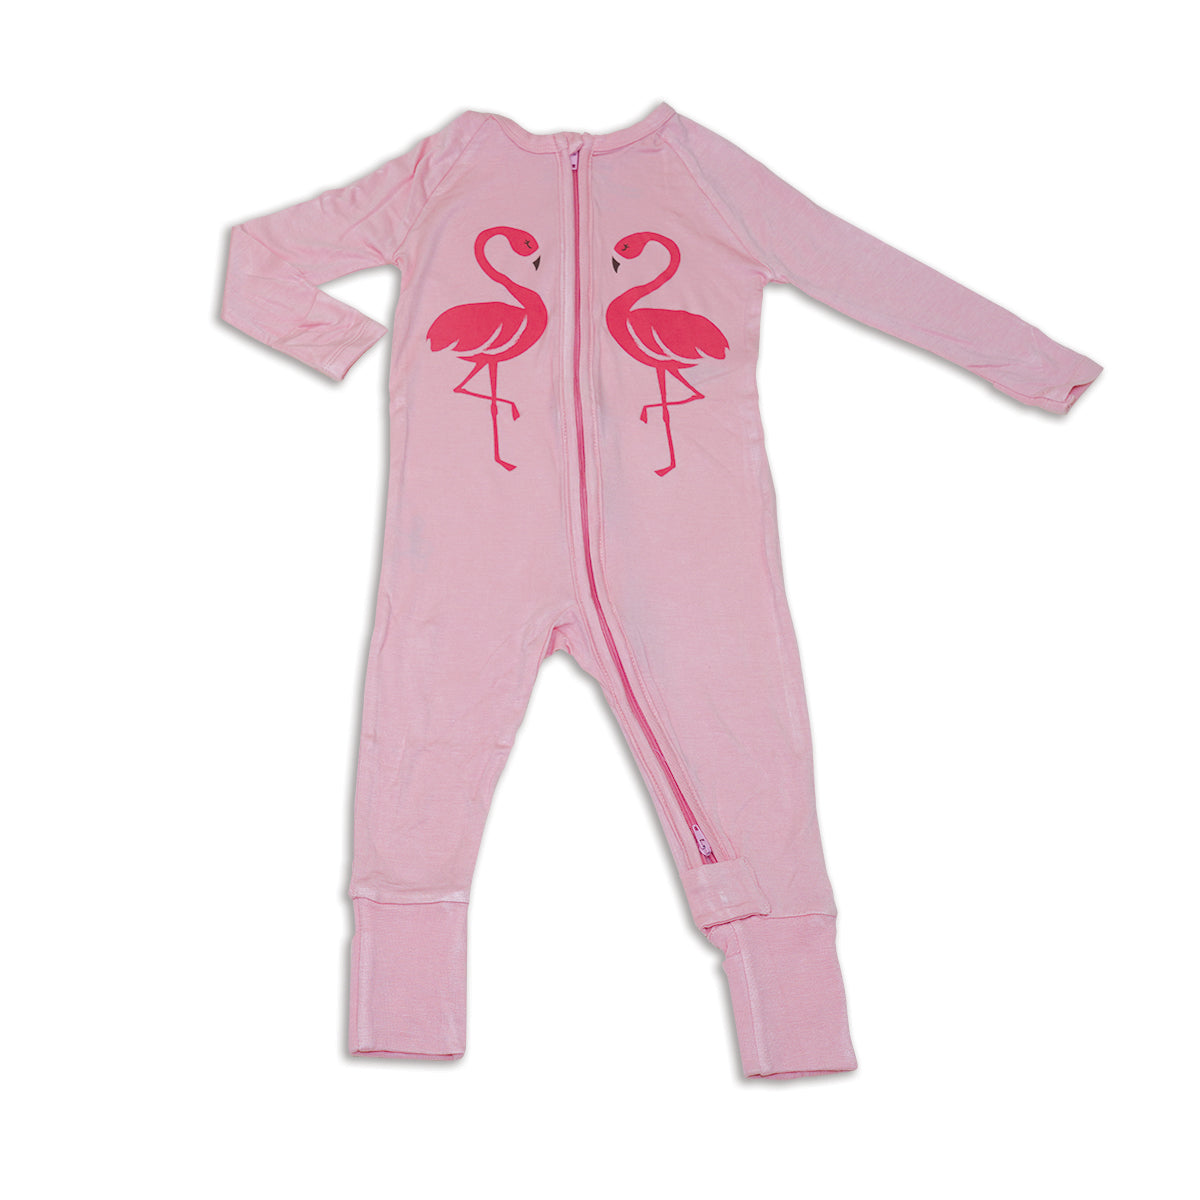 Bamboo Two-way Zipper Romper/Sleeper (Jellyfish)